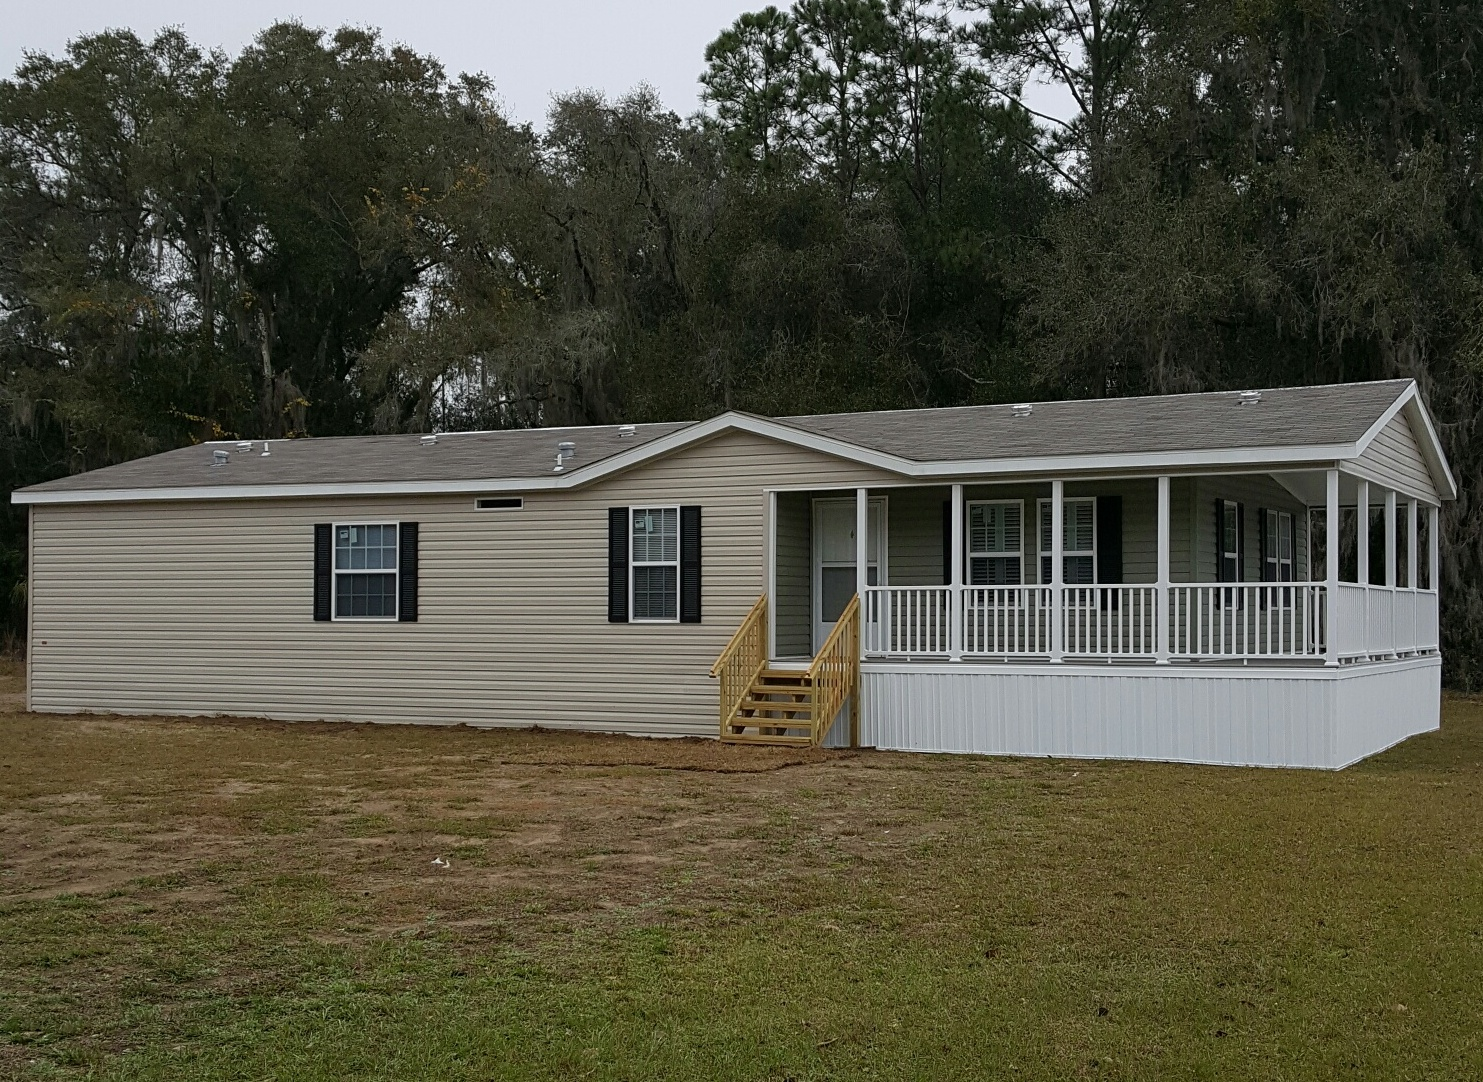 4 bedroom modular homes 1696 square with awesome covered porch 3 br and 13967